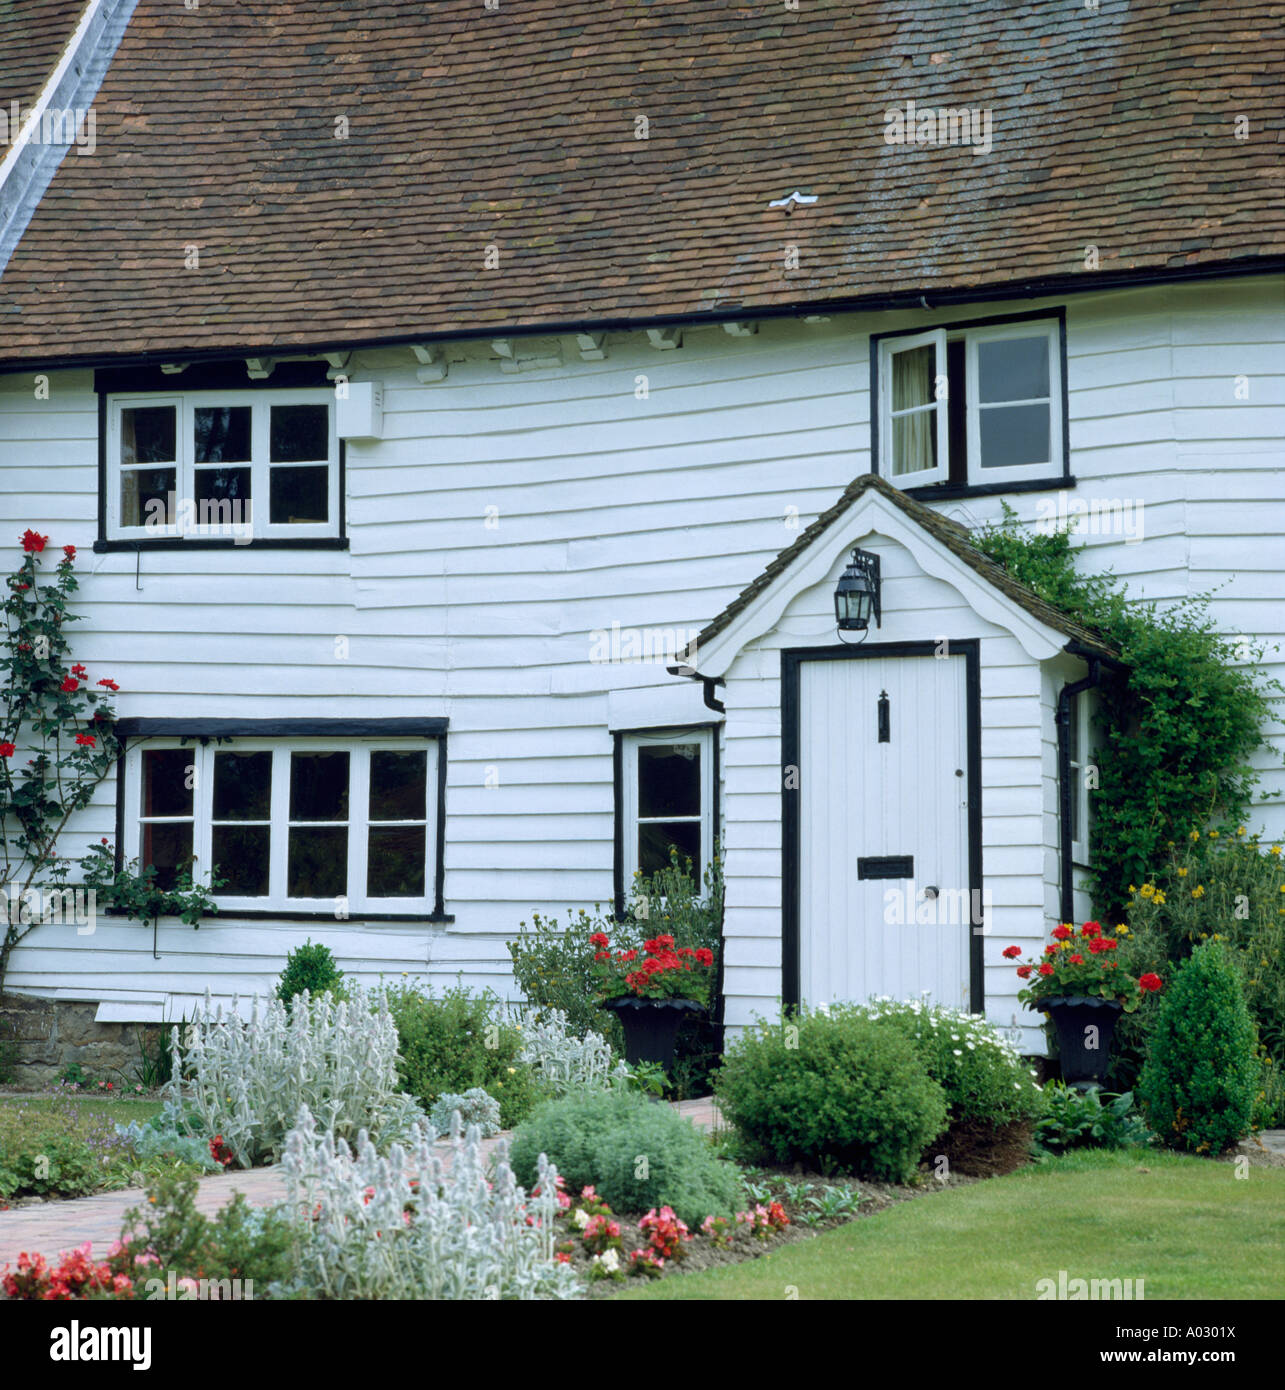 Traditional white-painted wooden cottage in country - Stock Image